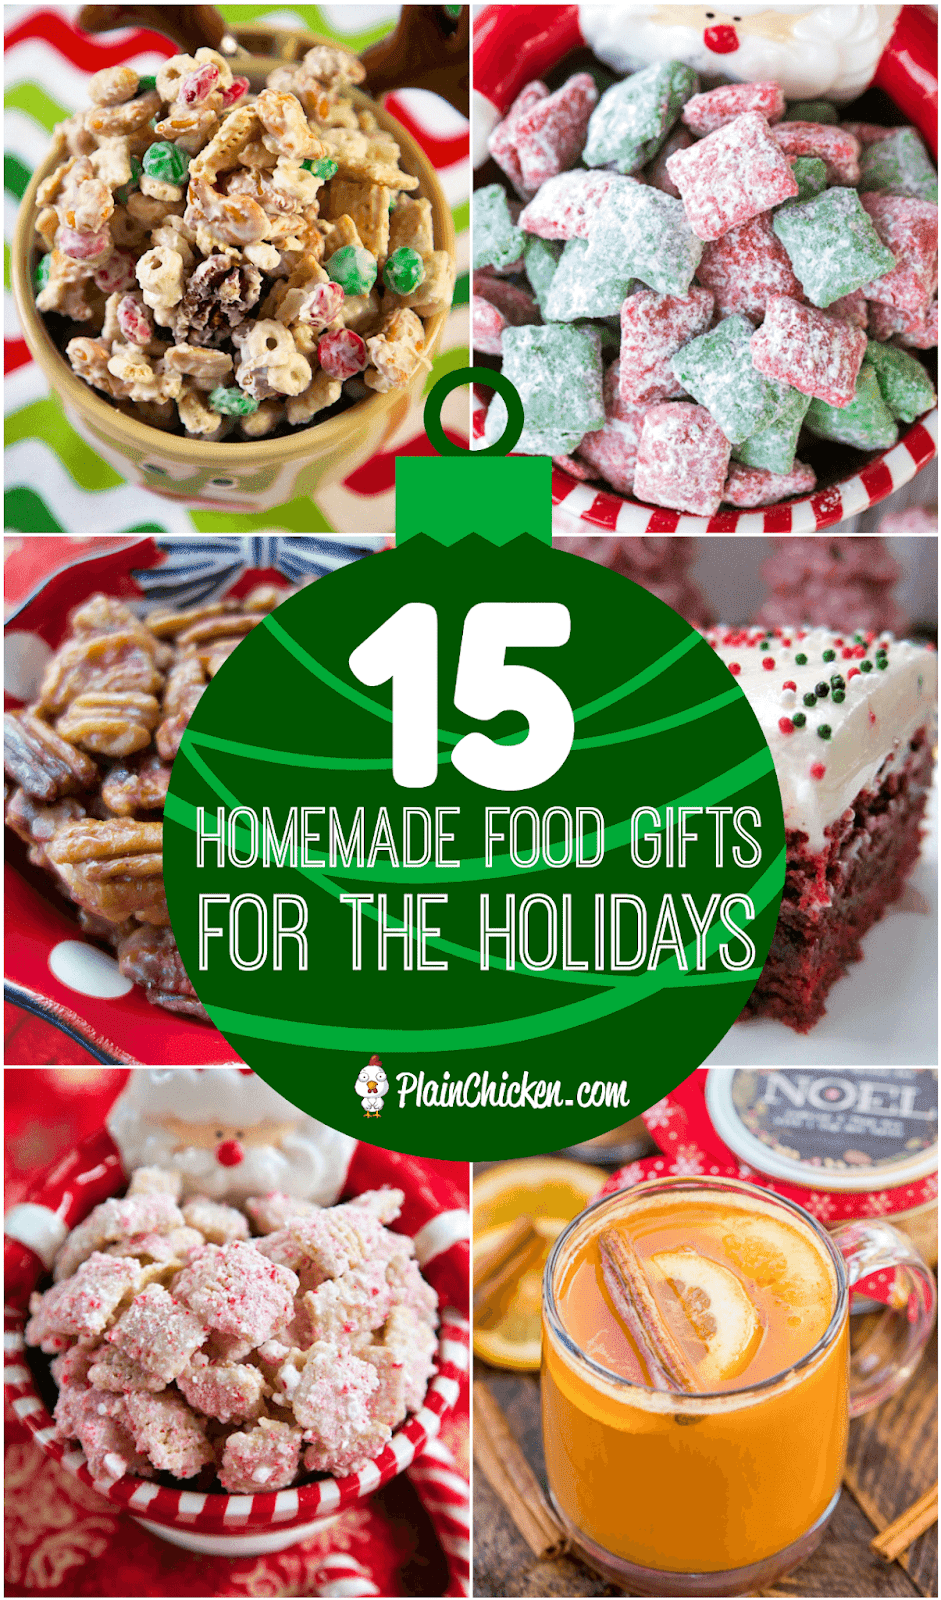 15 Homemade Food Gifts for the Holidays | Plain Chicken